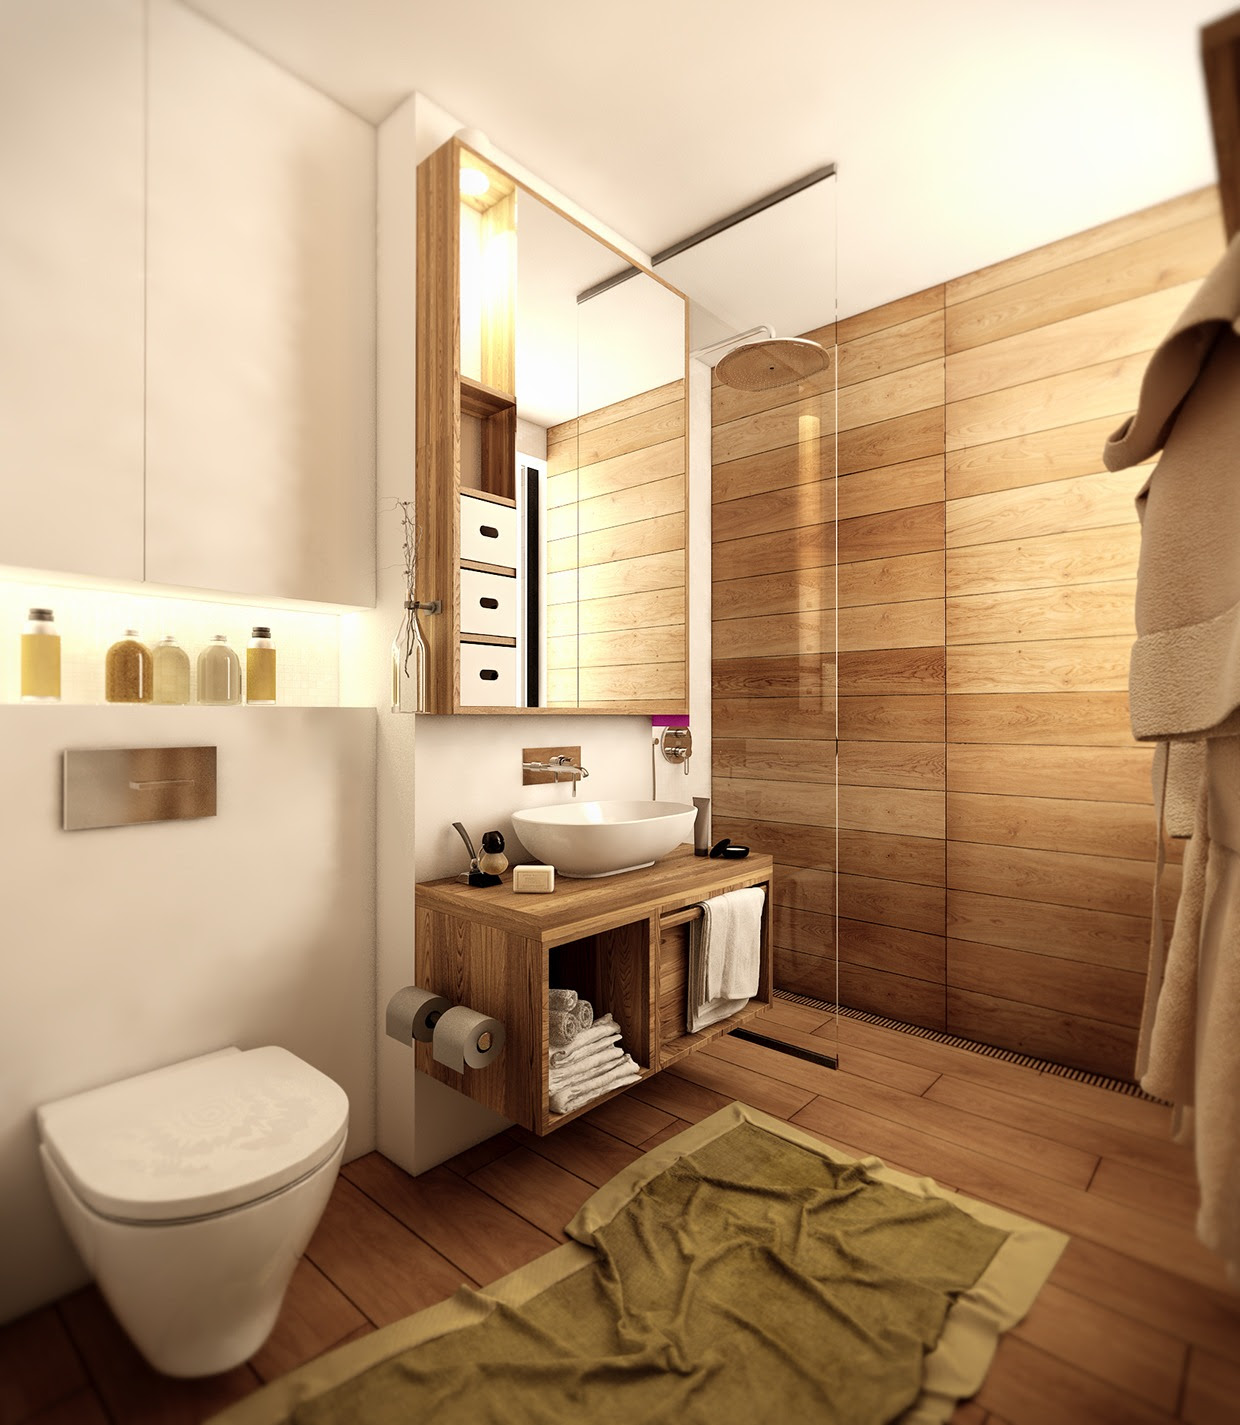 wood-floor-bathroom | Interior Design Ideas.